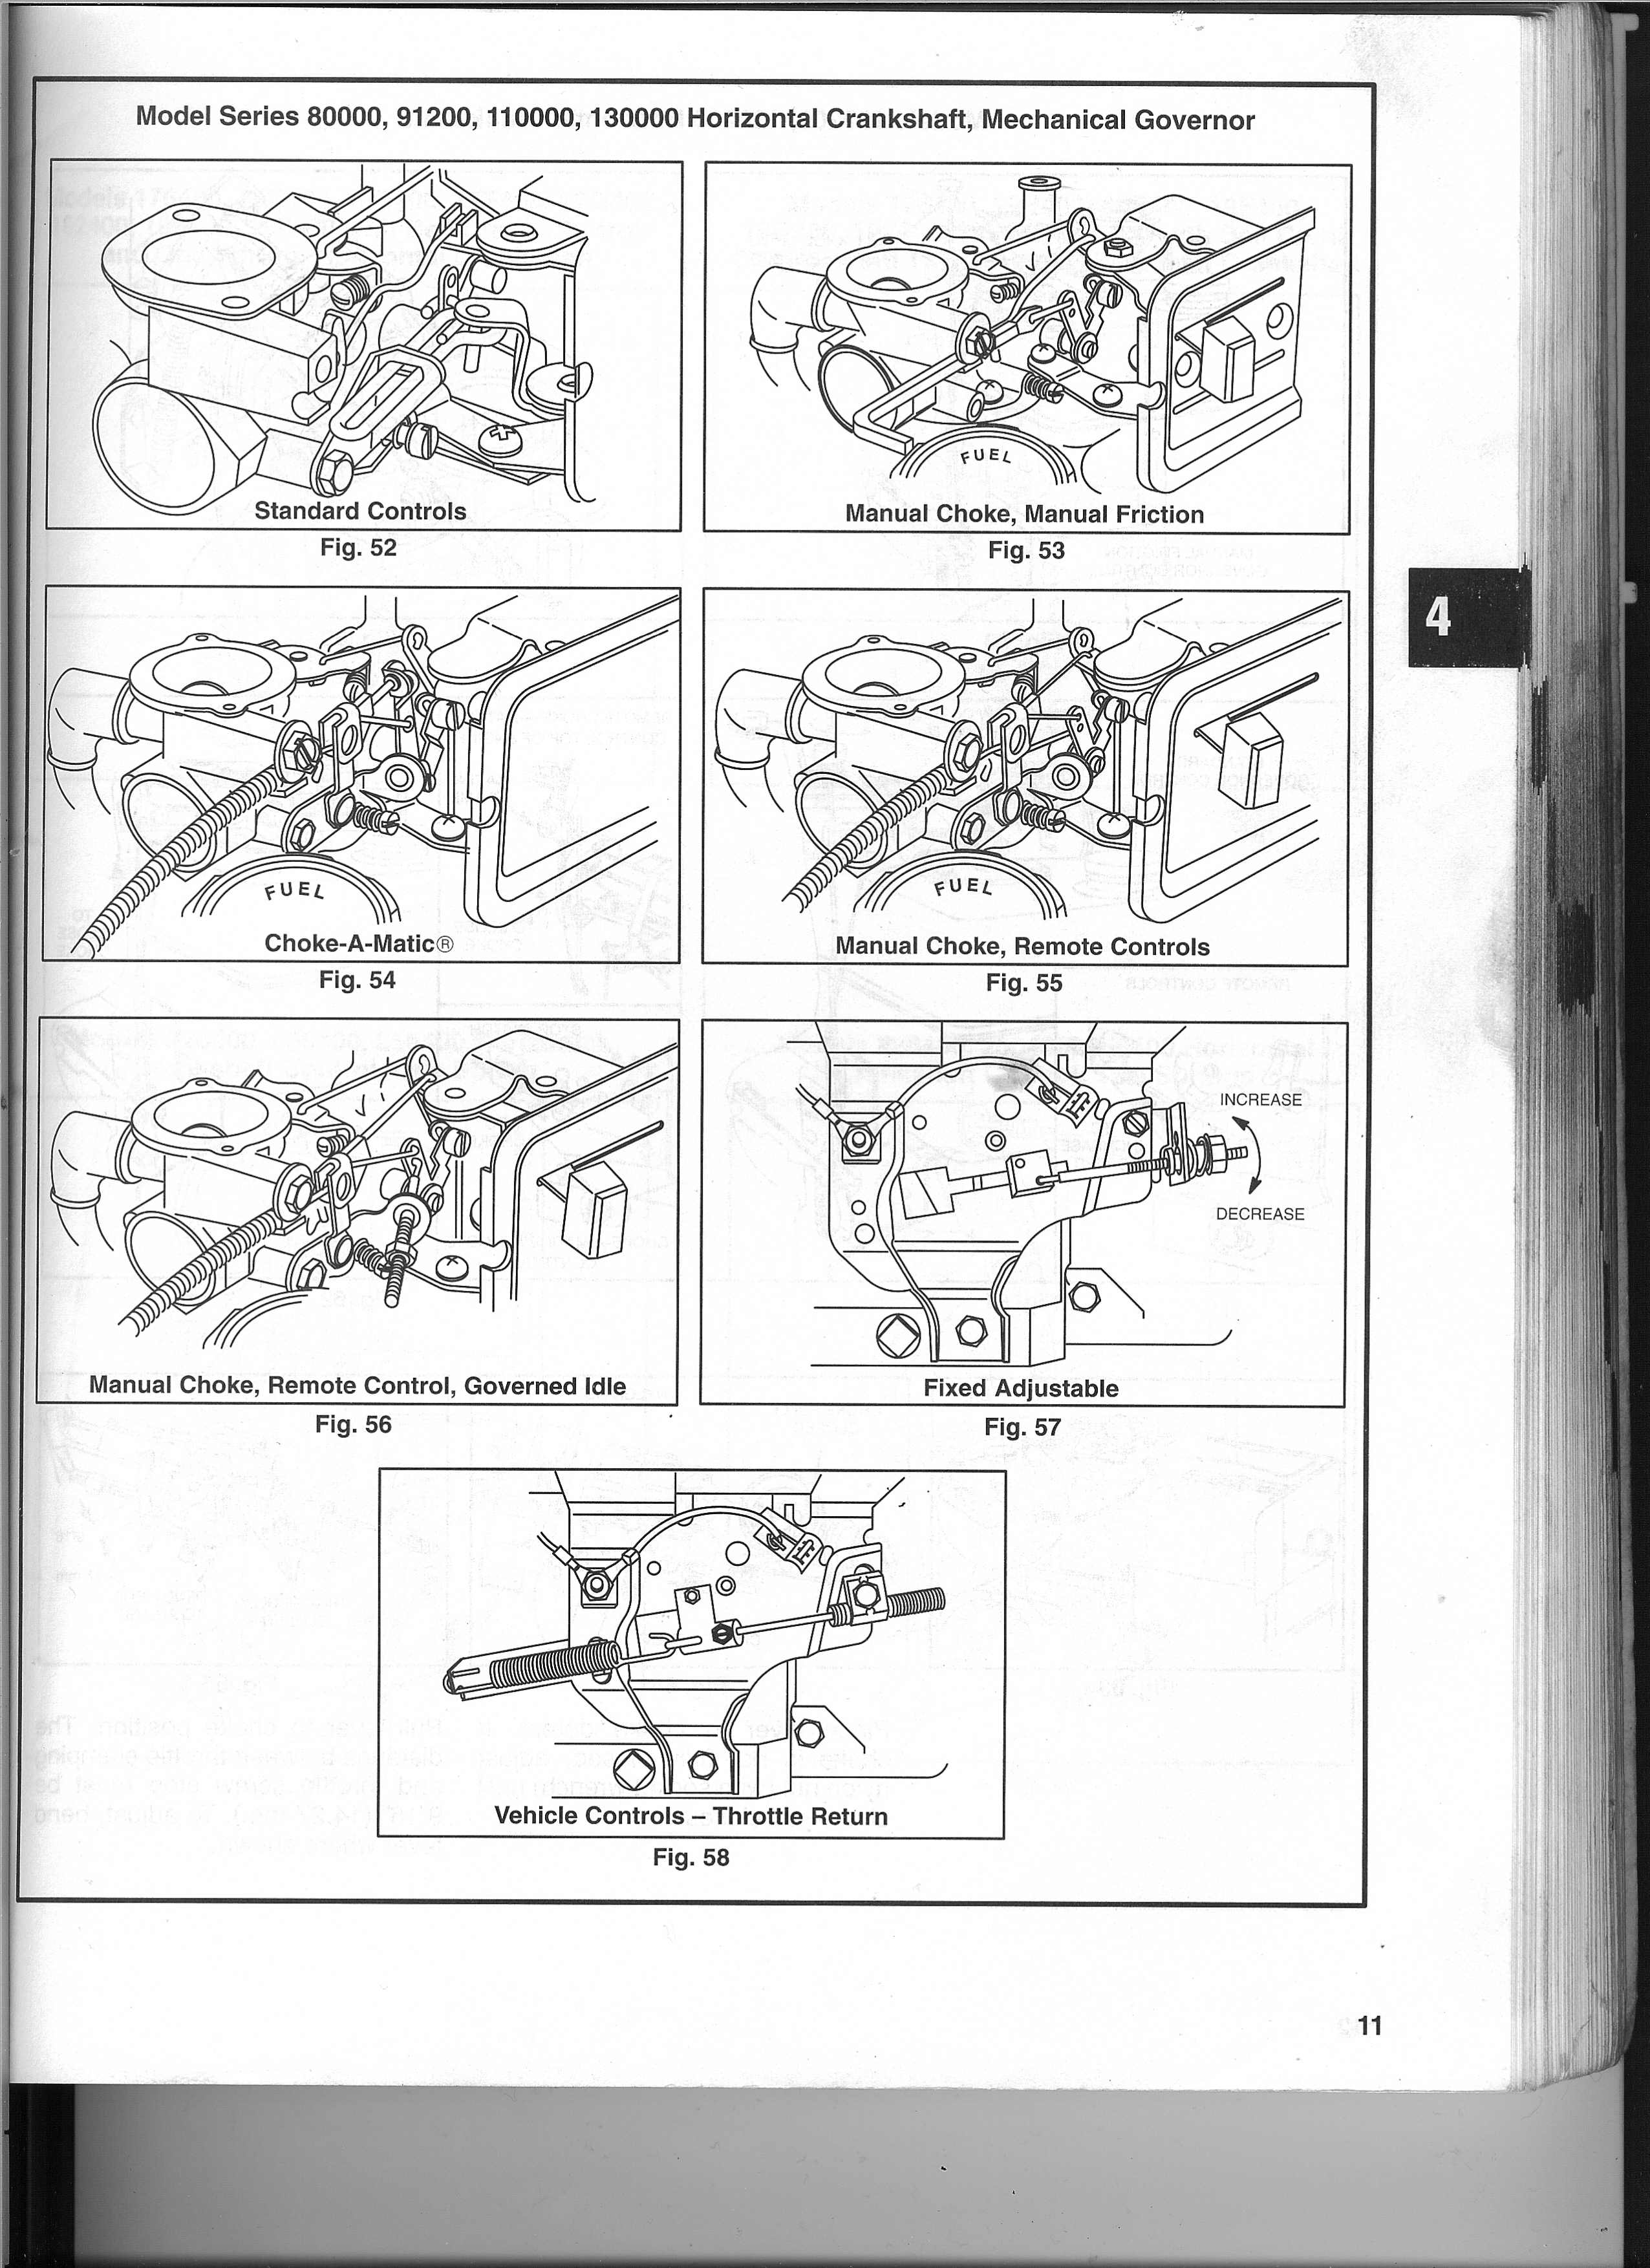 Briggs and stratton repair manual model 28r707 ebook array briggs and stratton repair manual model 28r707 ebook rh briggs and stratton repair manual fandeluxe Choice Image